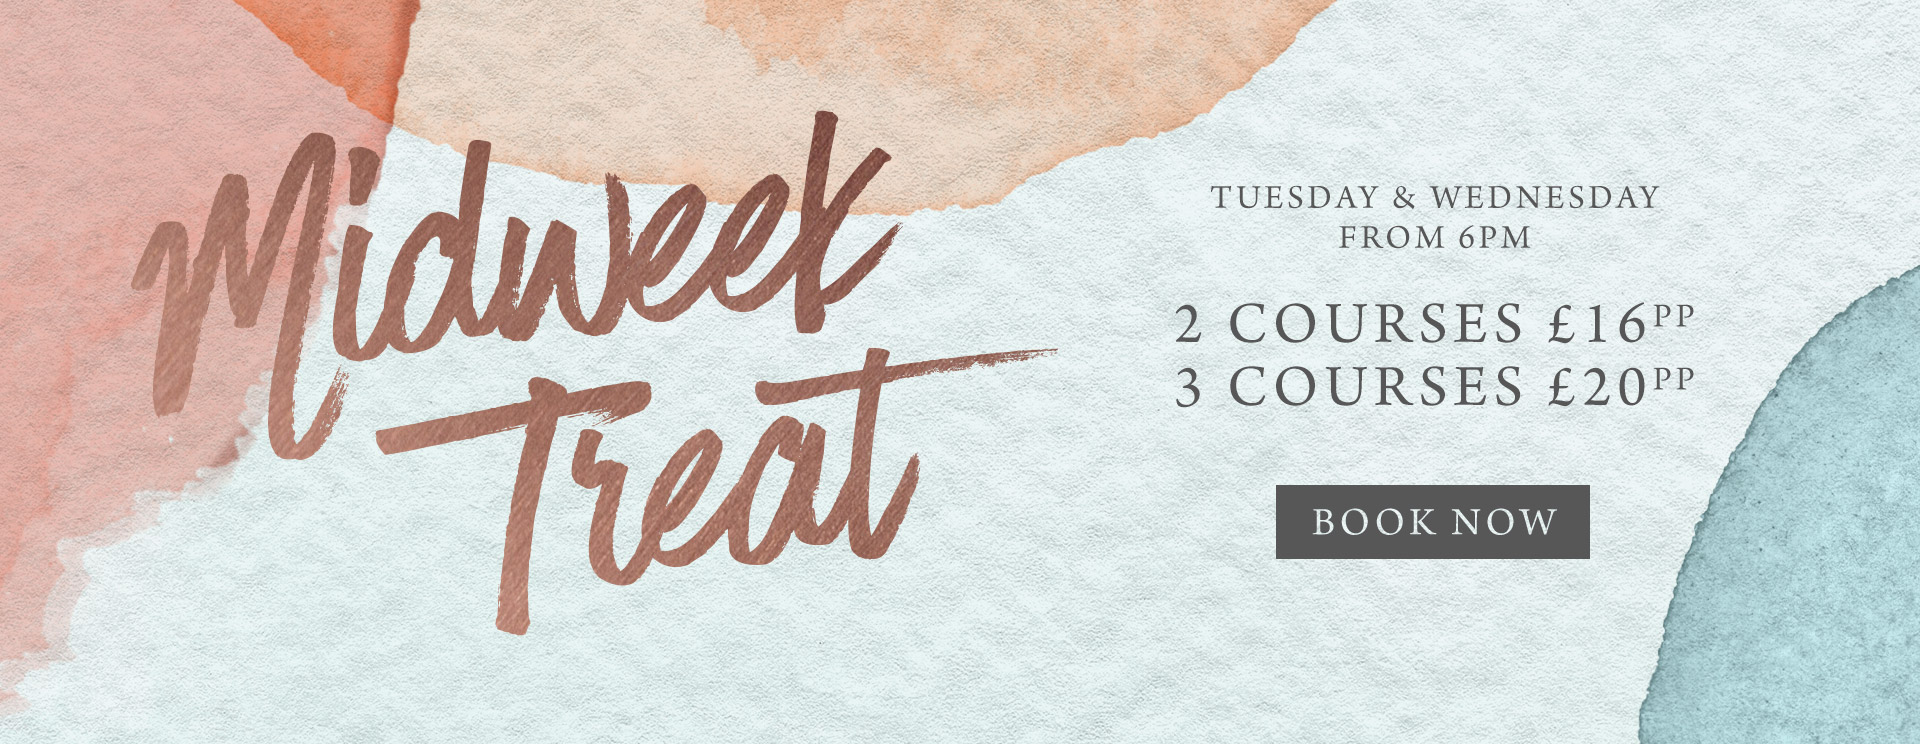 Midweek treat at The Plough - Book now